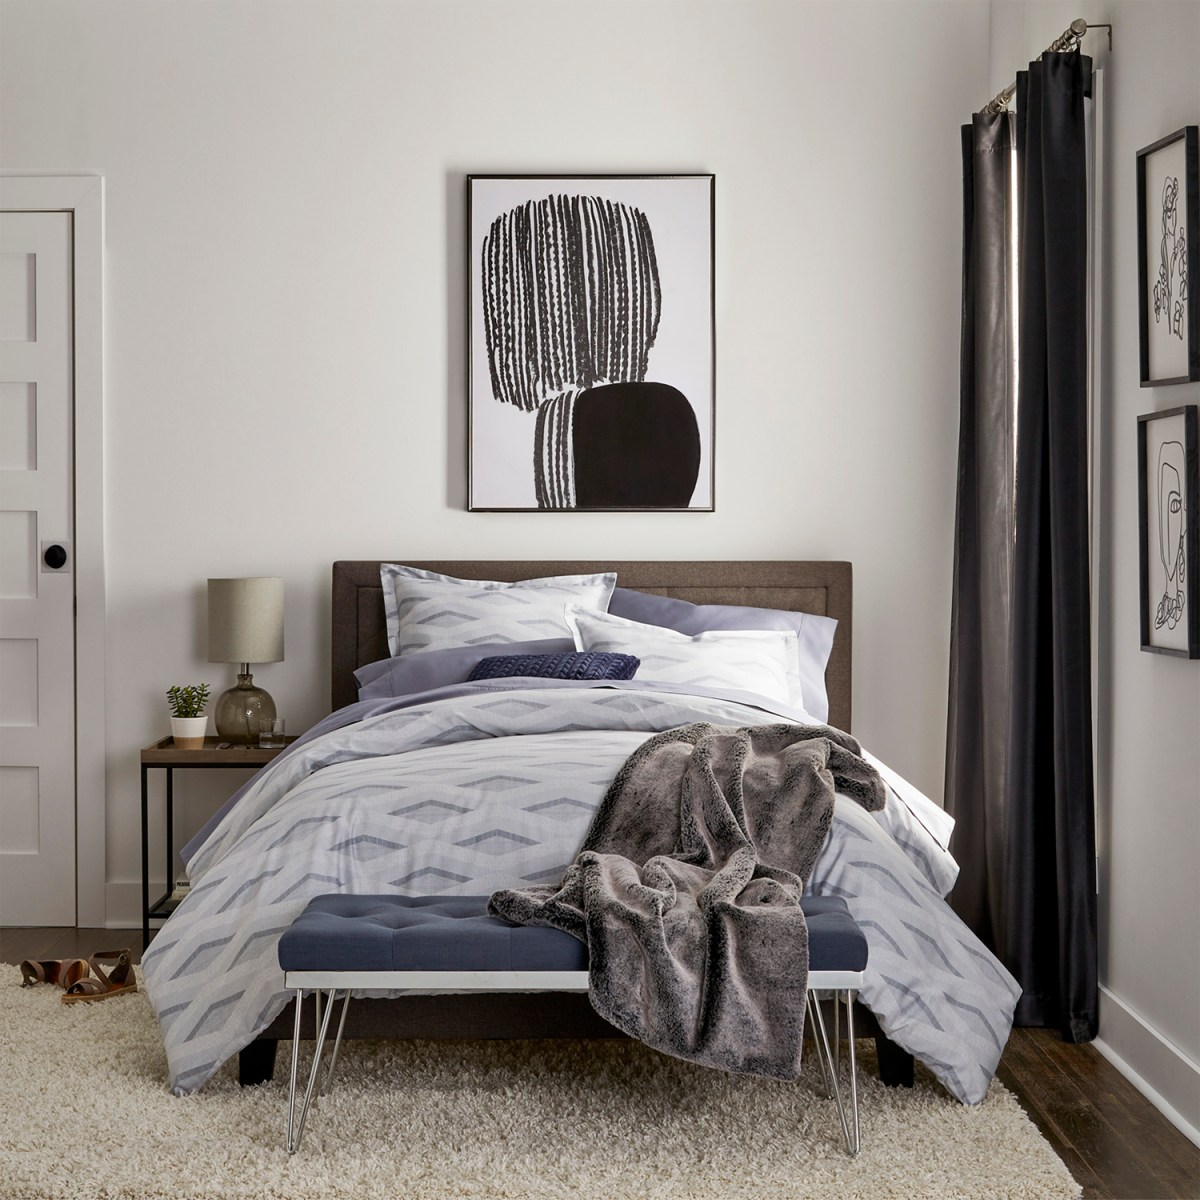 JCPenney's New Private Label Helps Consumers Invest in Their Nest